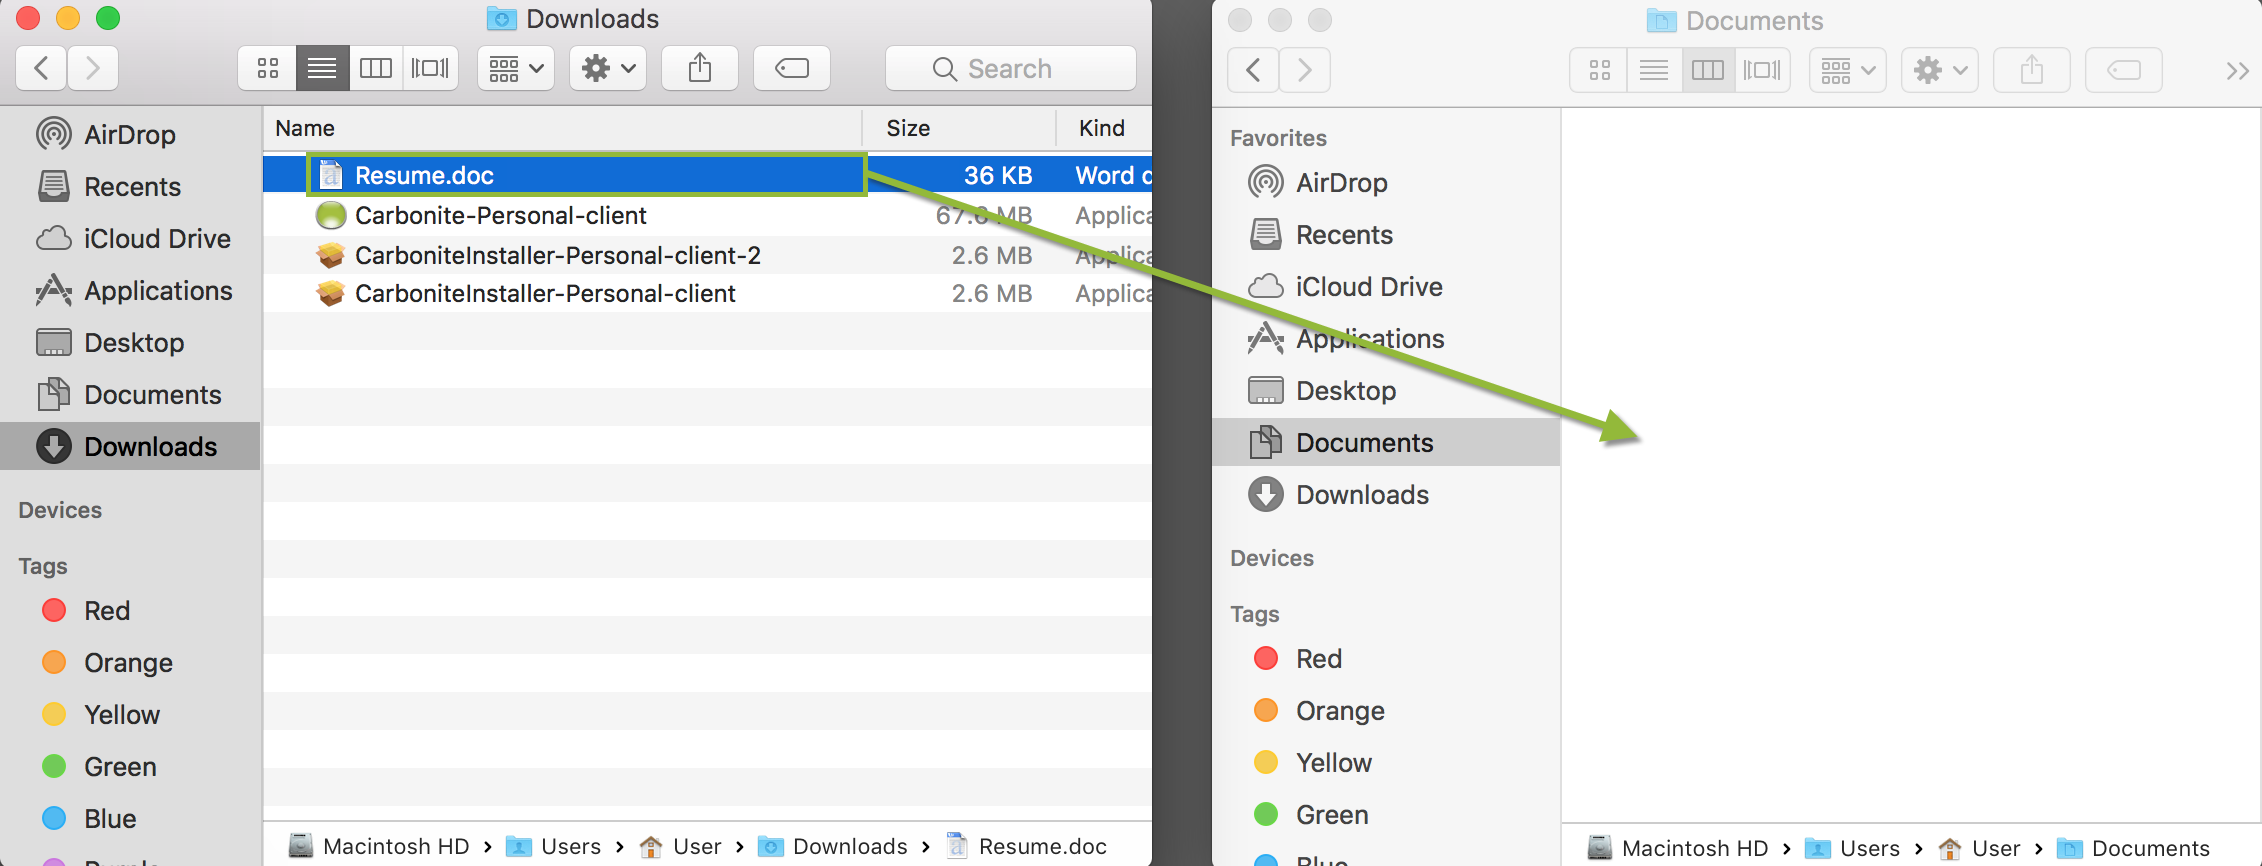 macOS Finder: Dragging and dropping files from Downloads to Documents